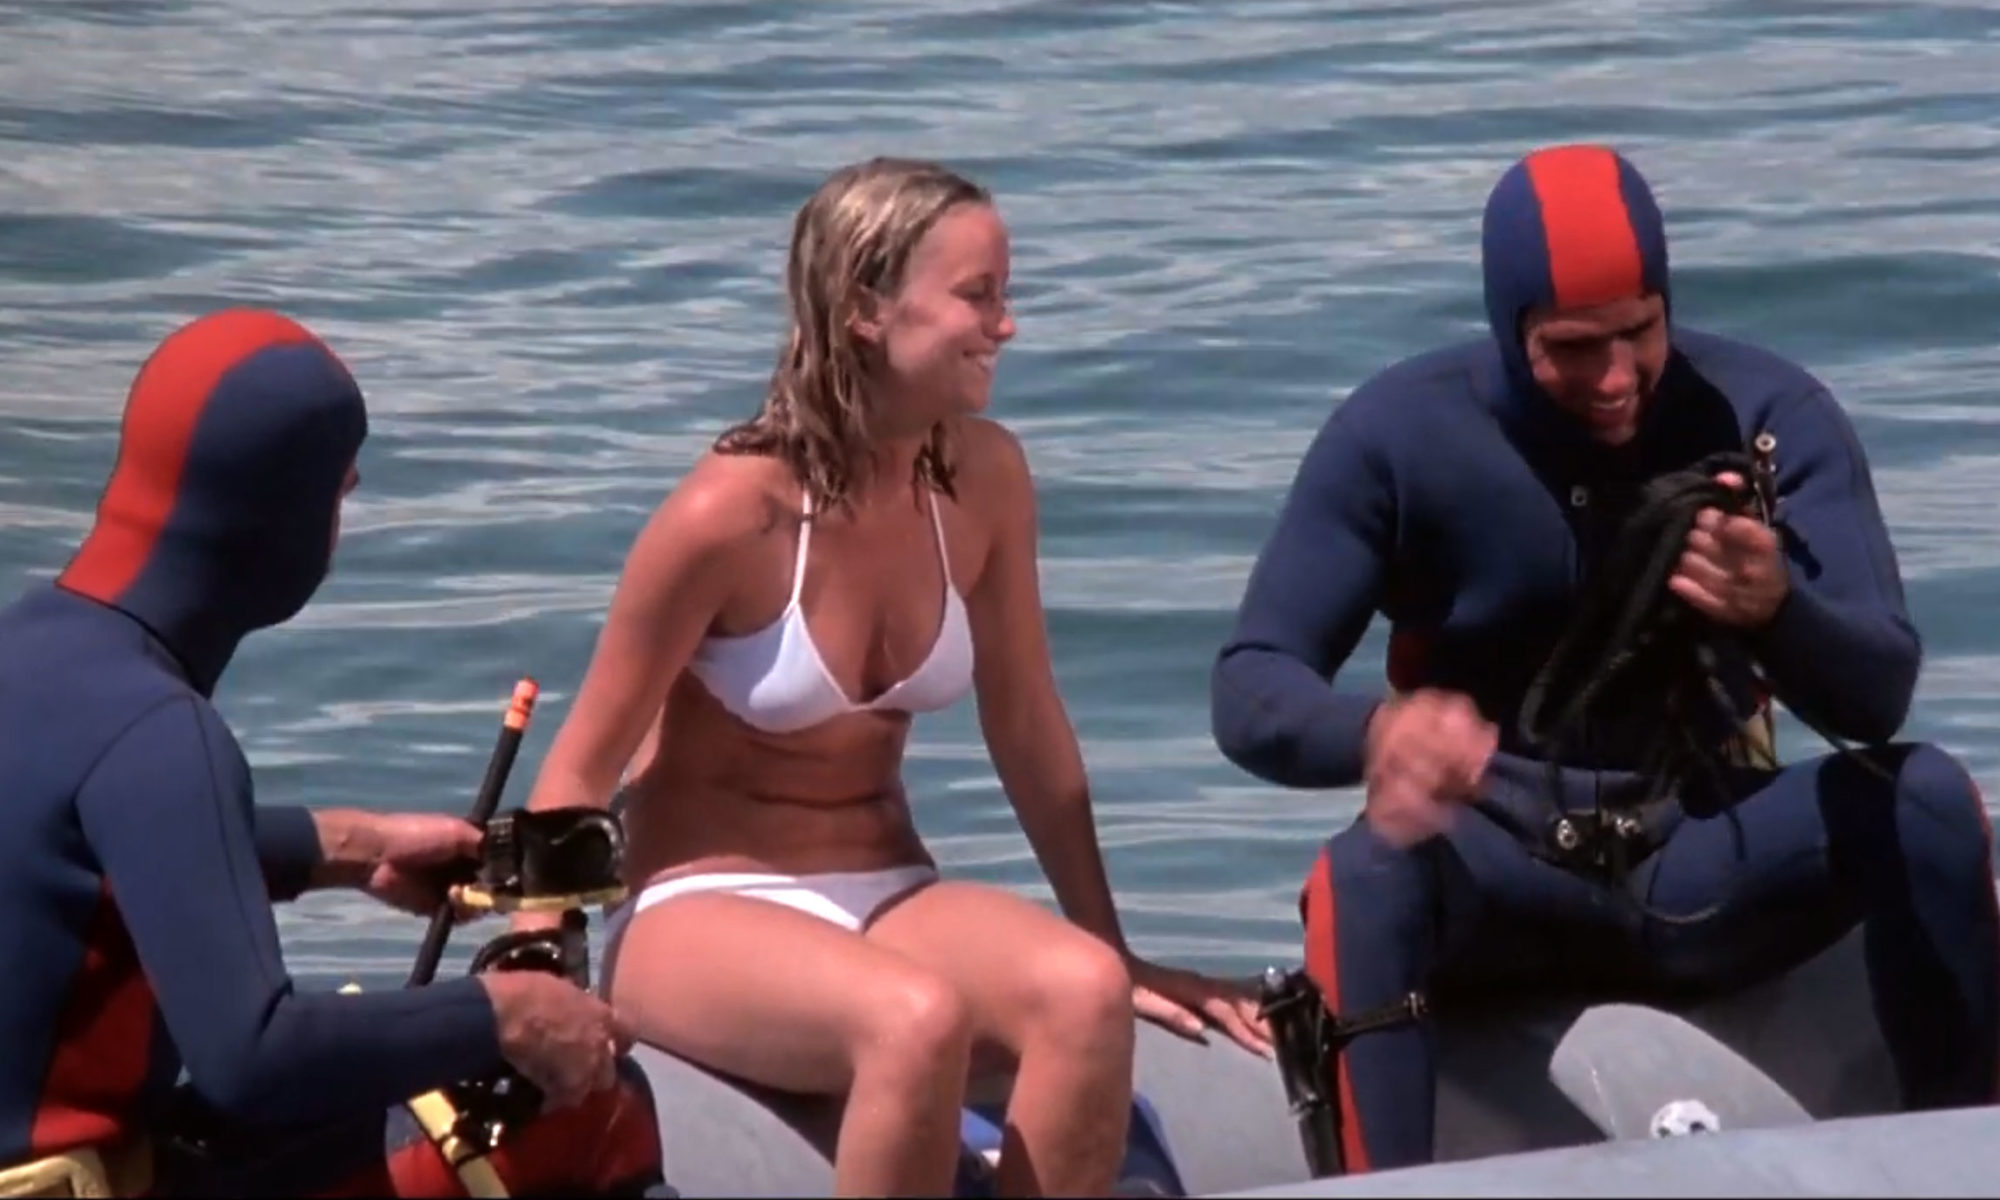 Susan George in a bikini flanked by two dudes in wetsuits